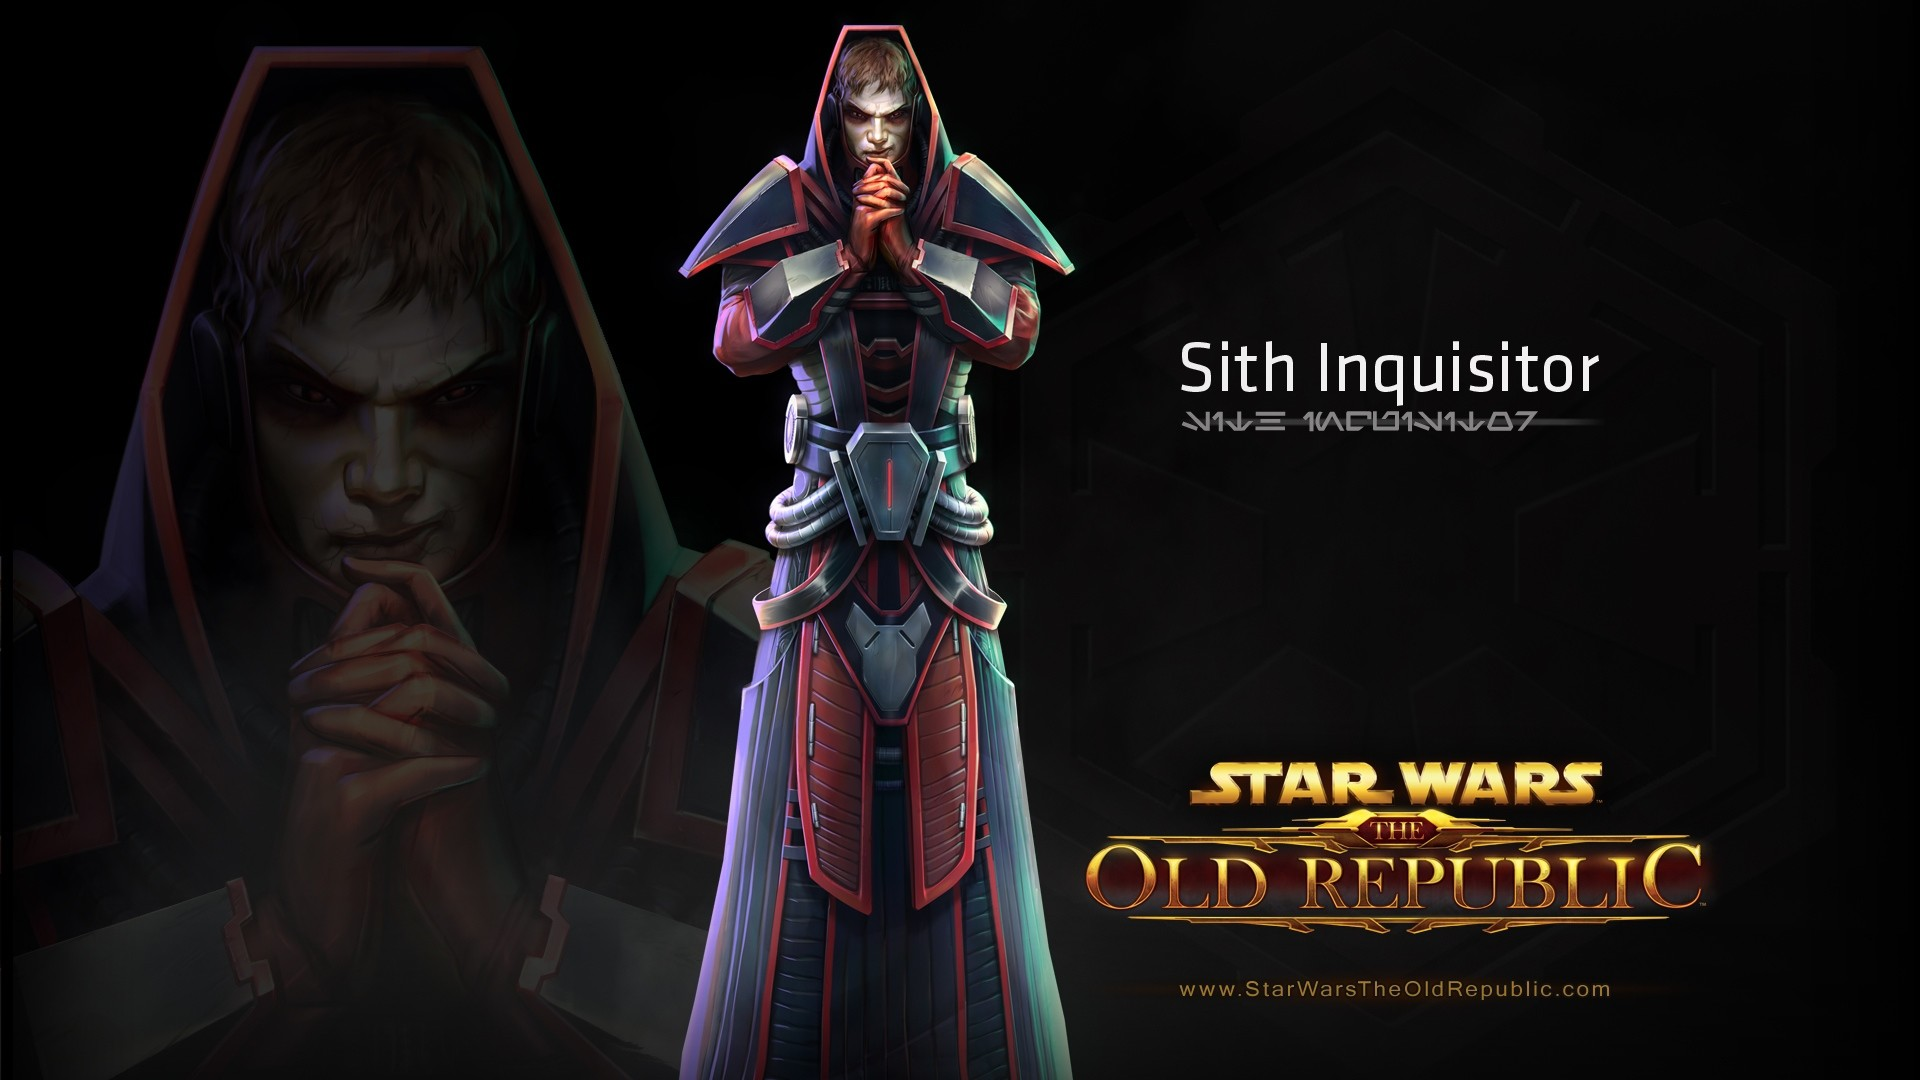 1920x1080 Preview wallpaper star wars the old republic, sith inquisitor, character,  costume